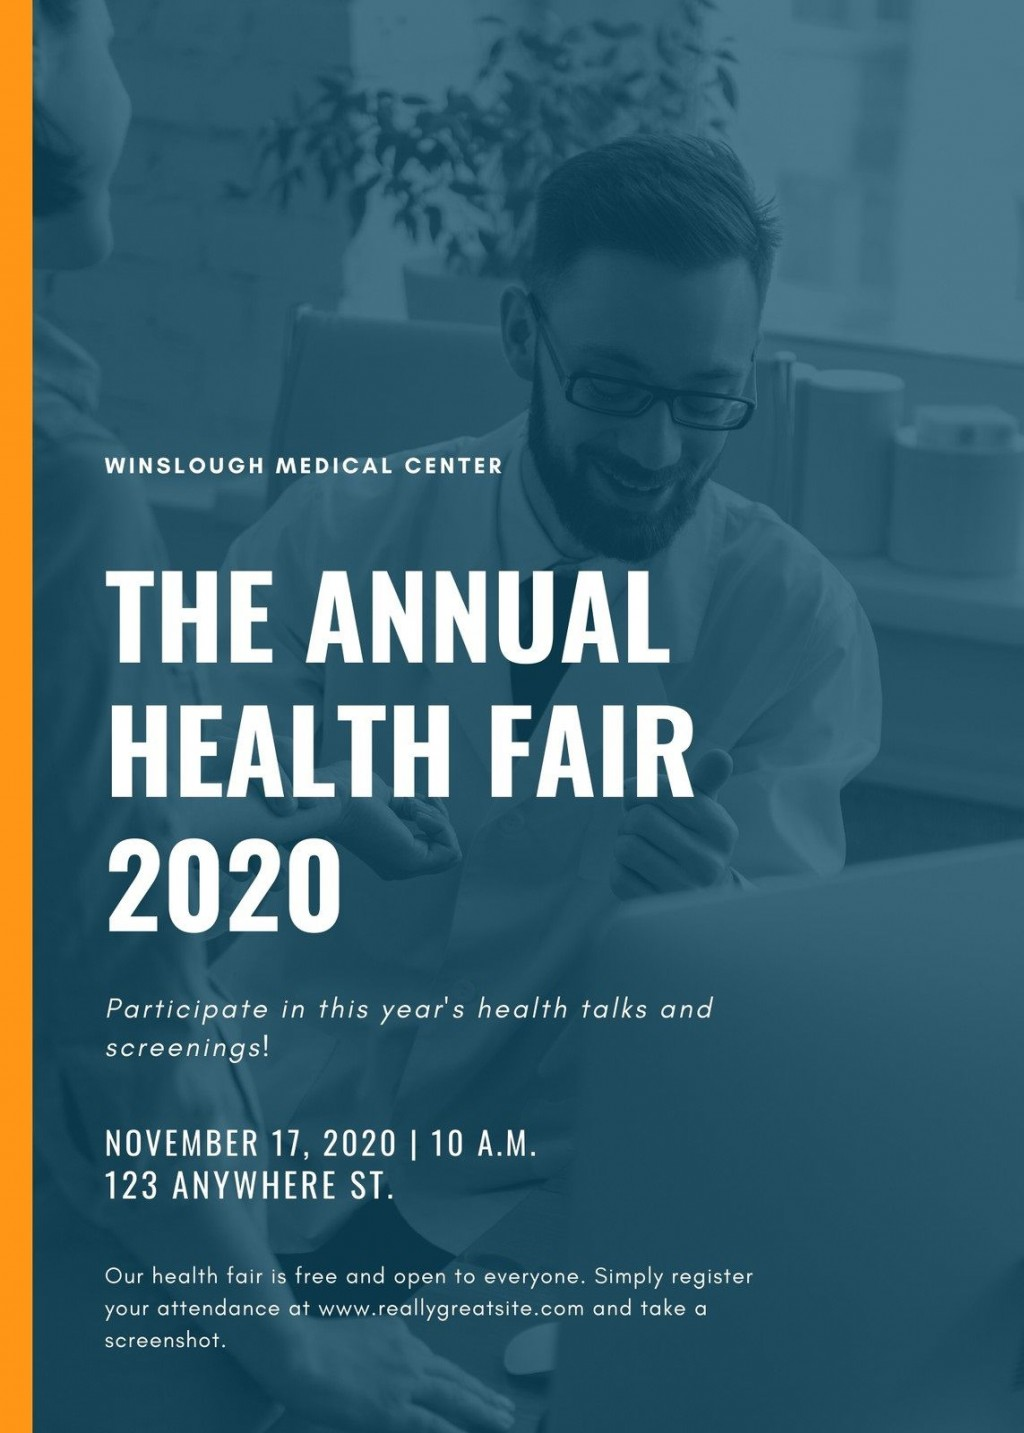 007 Phenomenal Health Fair Flyer Template High Definition  And Wellnes WordLarge